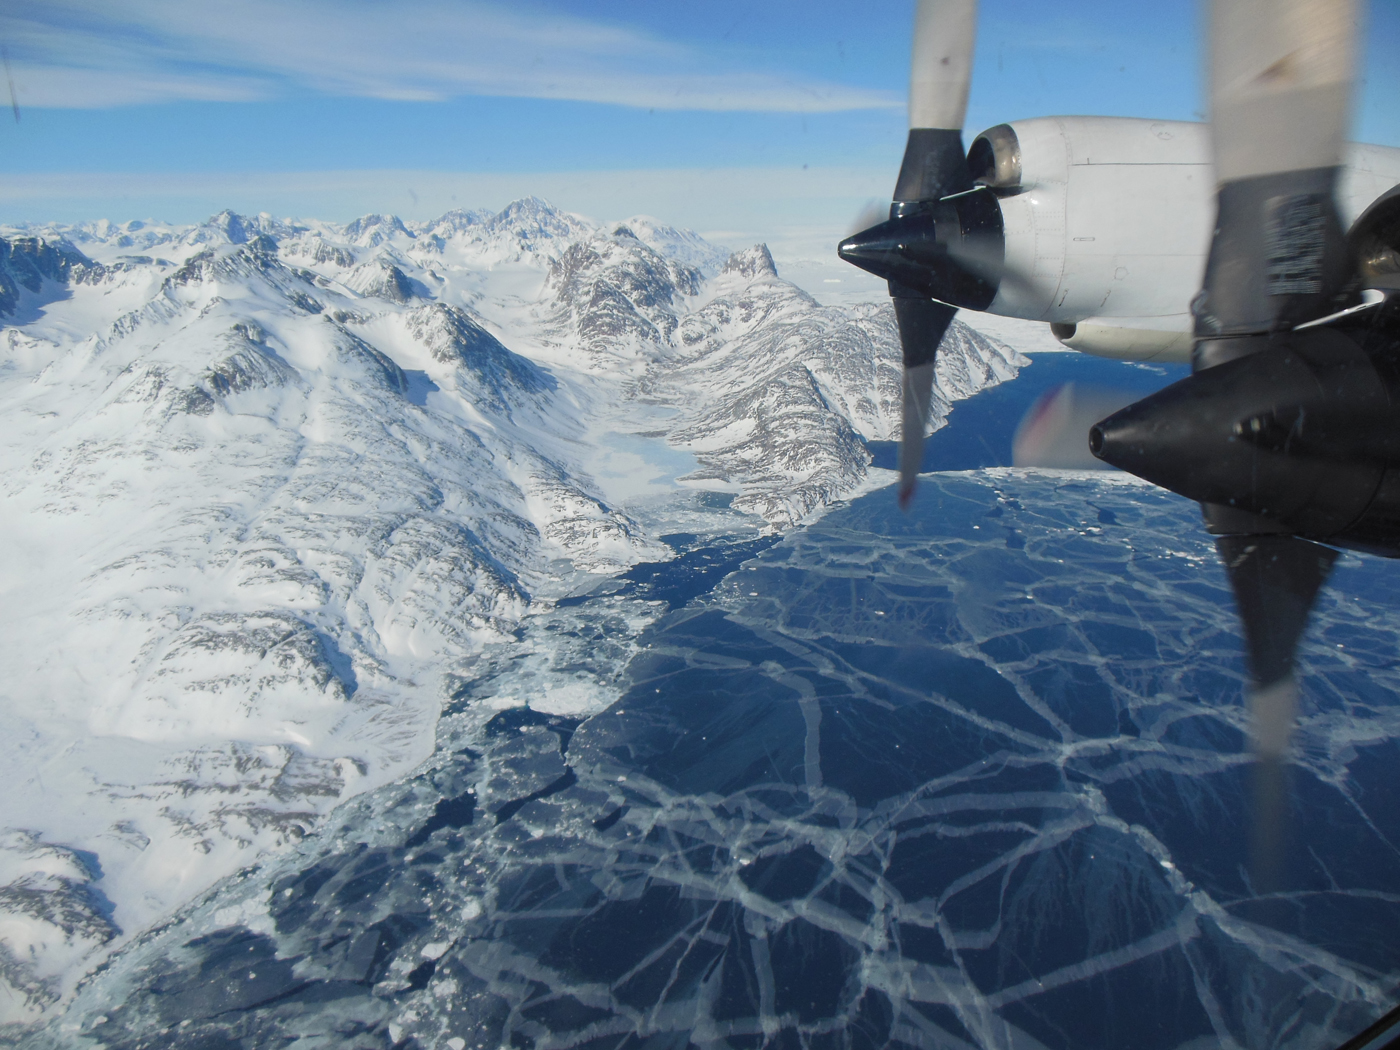 The plane flies over sea ice. The P-3B propeller can be seen out the window of the plane.